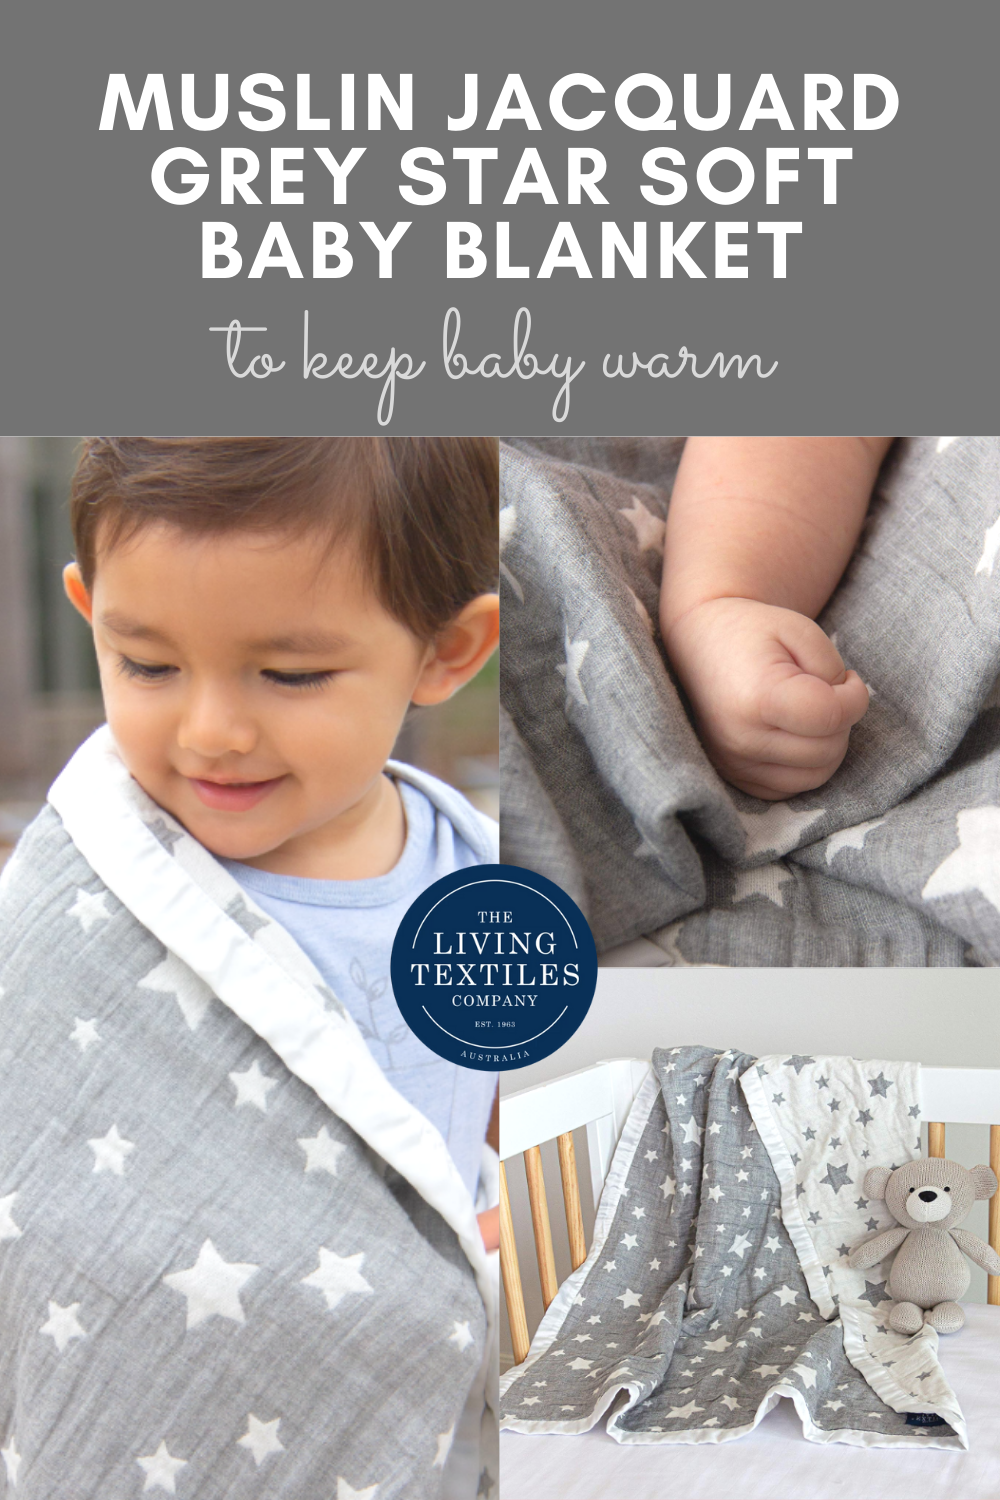 Keep Your Newborn Baby Warm With Our 100 Cotton Muslin Baby Blanket That S Softer And Cozier Than Ever Othe In 2020 With Images Soft Baby Blankets Baby Soft Baby Play Activities